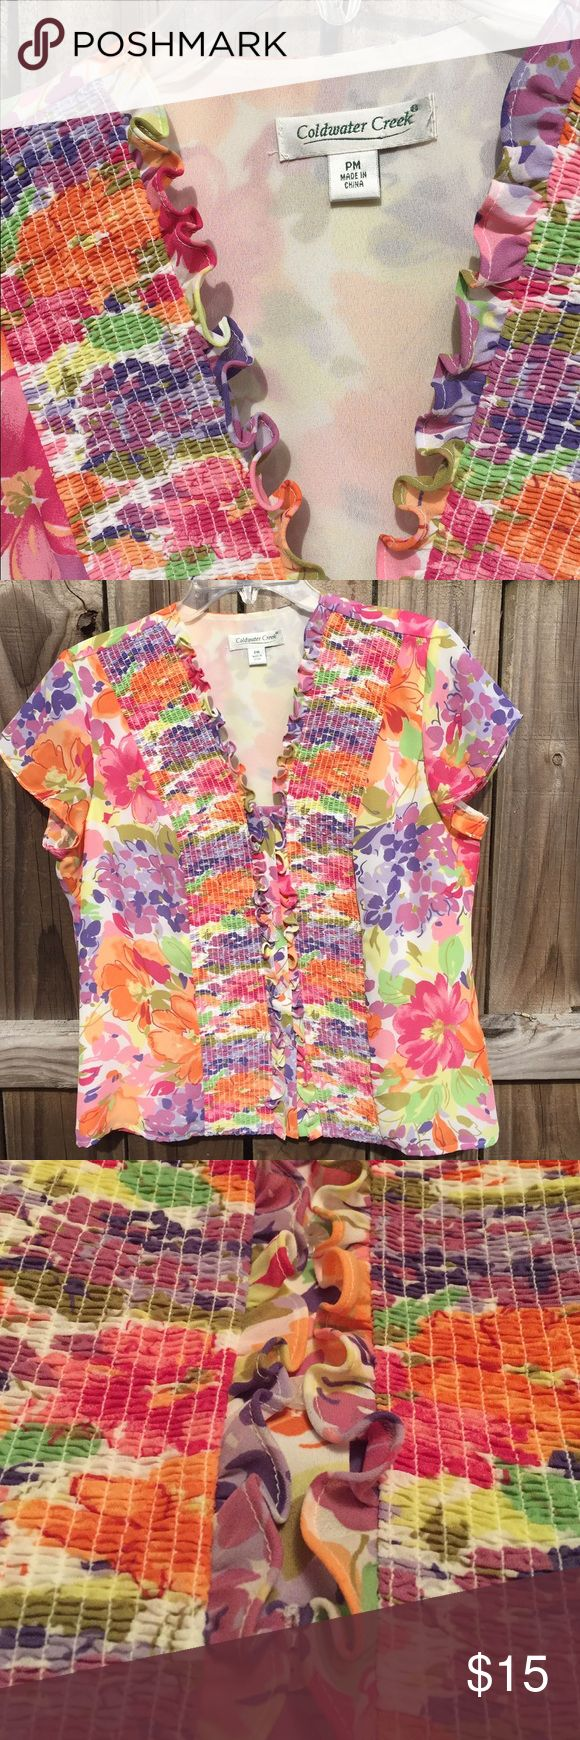 Coldwater Creek Floral Blouse Fully lined Coldwater Creek sheer floral blouse. Colors throughout are pinks, oranges, greens, purples and hints of yellow on a cream background. Smocking and ruffle detail at the front neckline to the hem. Ruffle detail covers the button up front. 100% polyester shell and lining. Sized Petite Medium. Please ask for measurements before buying if needed. Coldwater Creek Tops Blouses